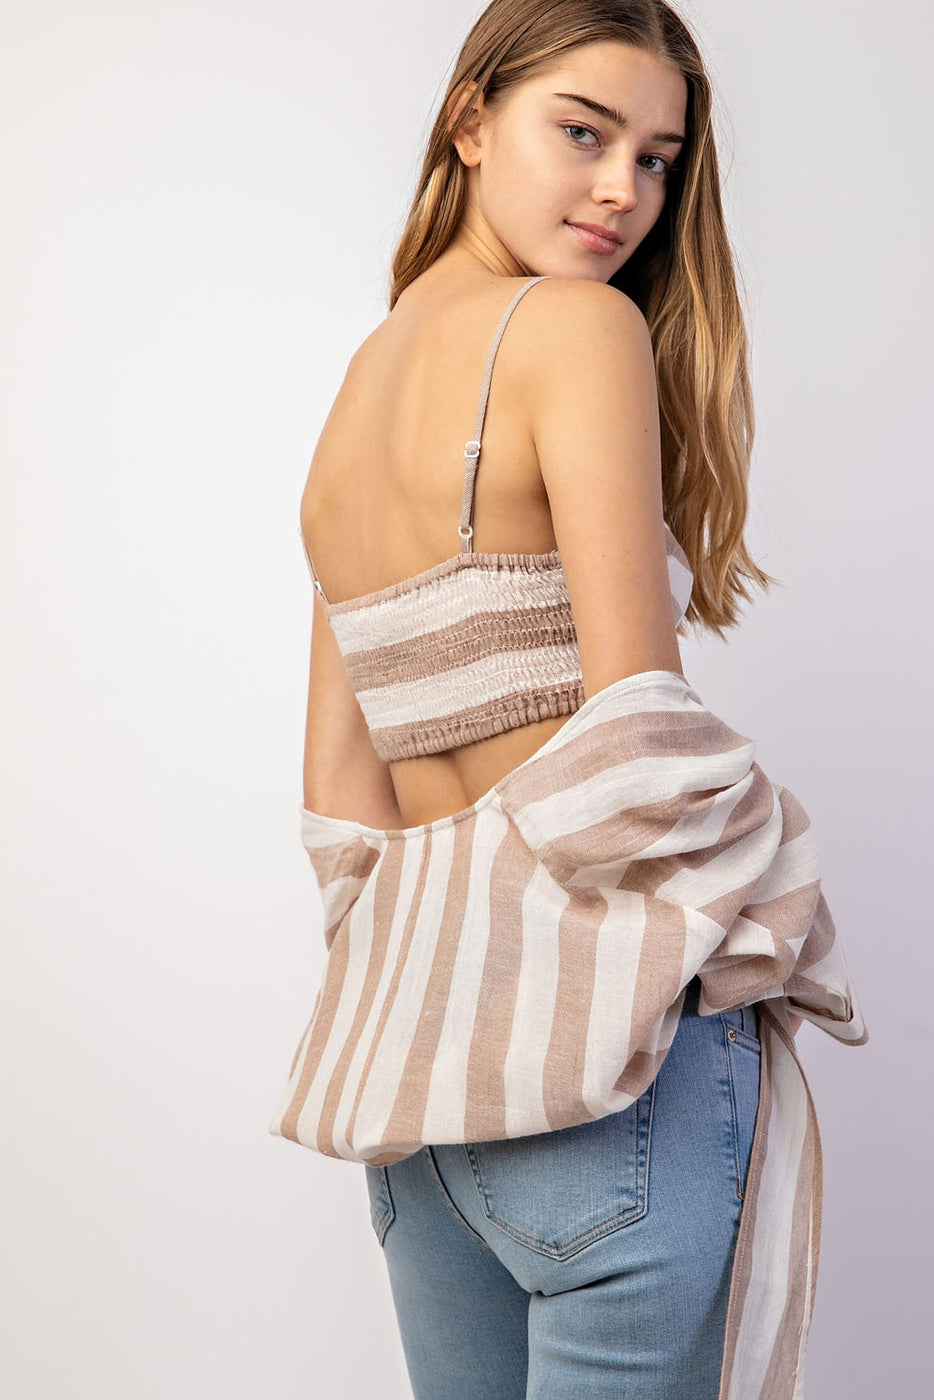 Striped Tank Top With Key Hole Detail Siin Bees